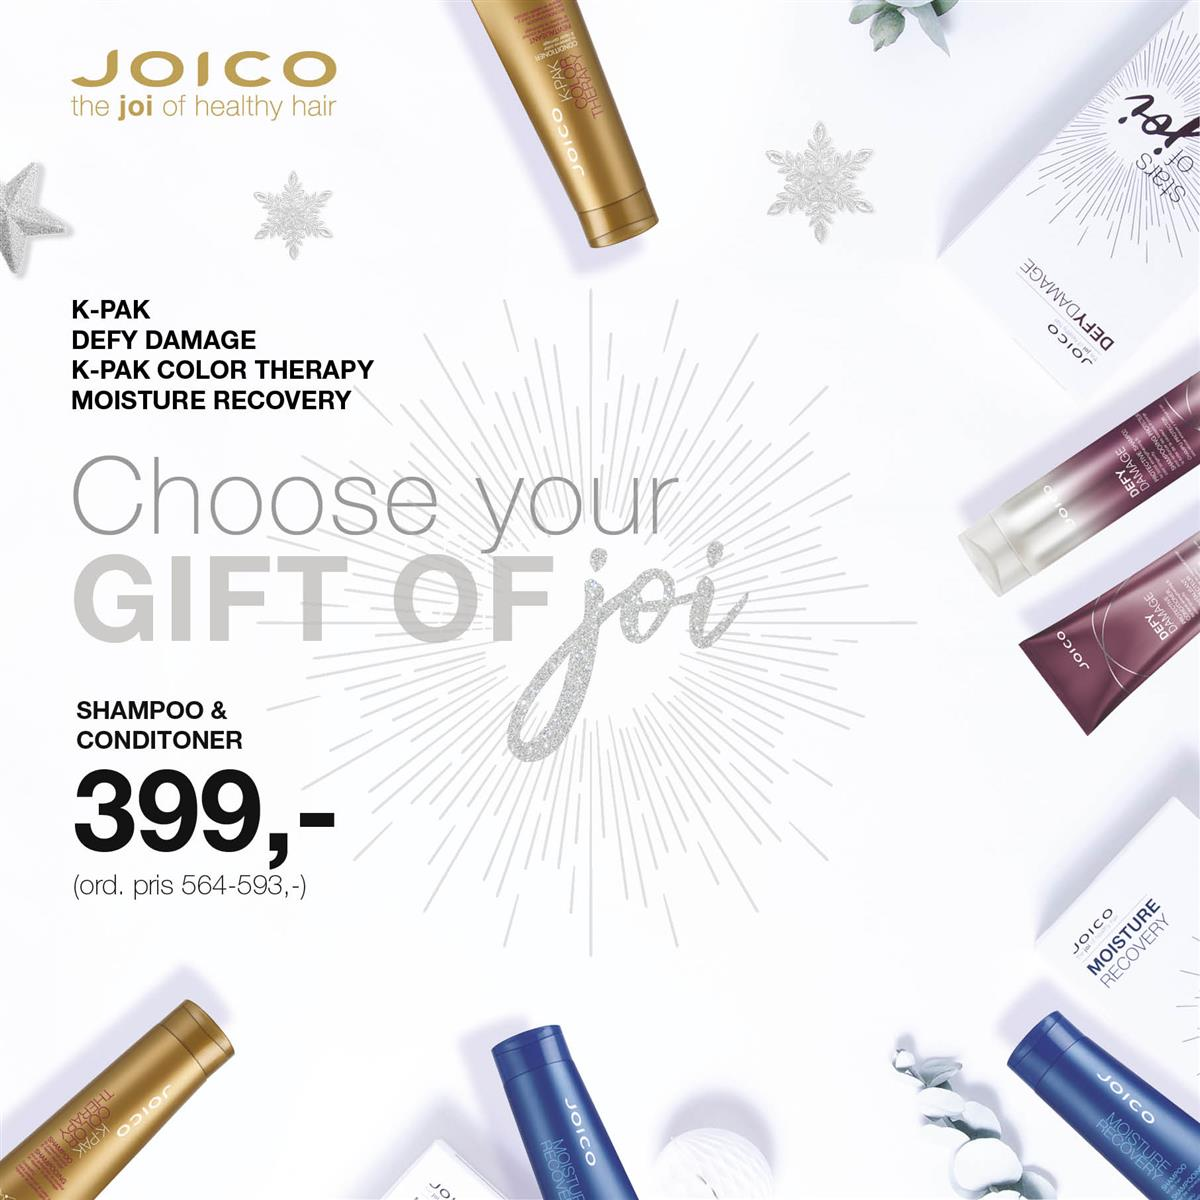 JOICO JULEKAMPANJE GIFT OF JOY - KAMPANJE NOVEMBER 2019